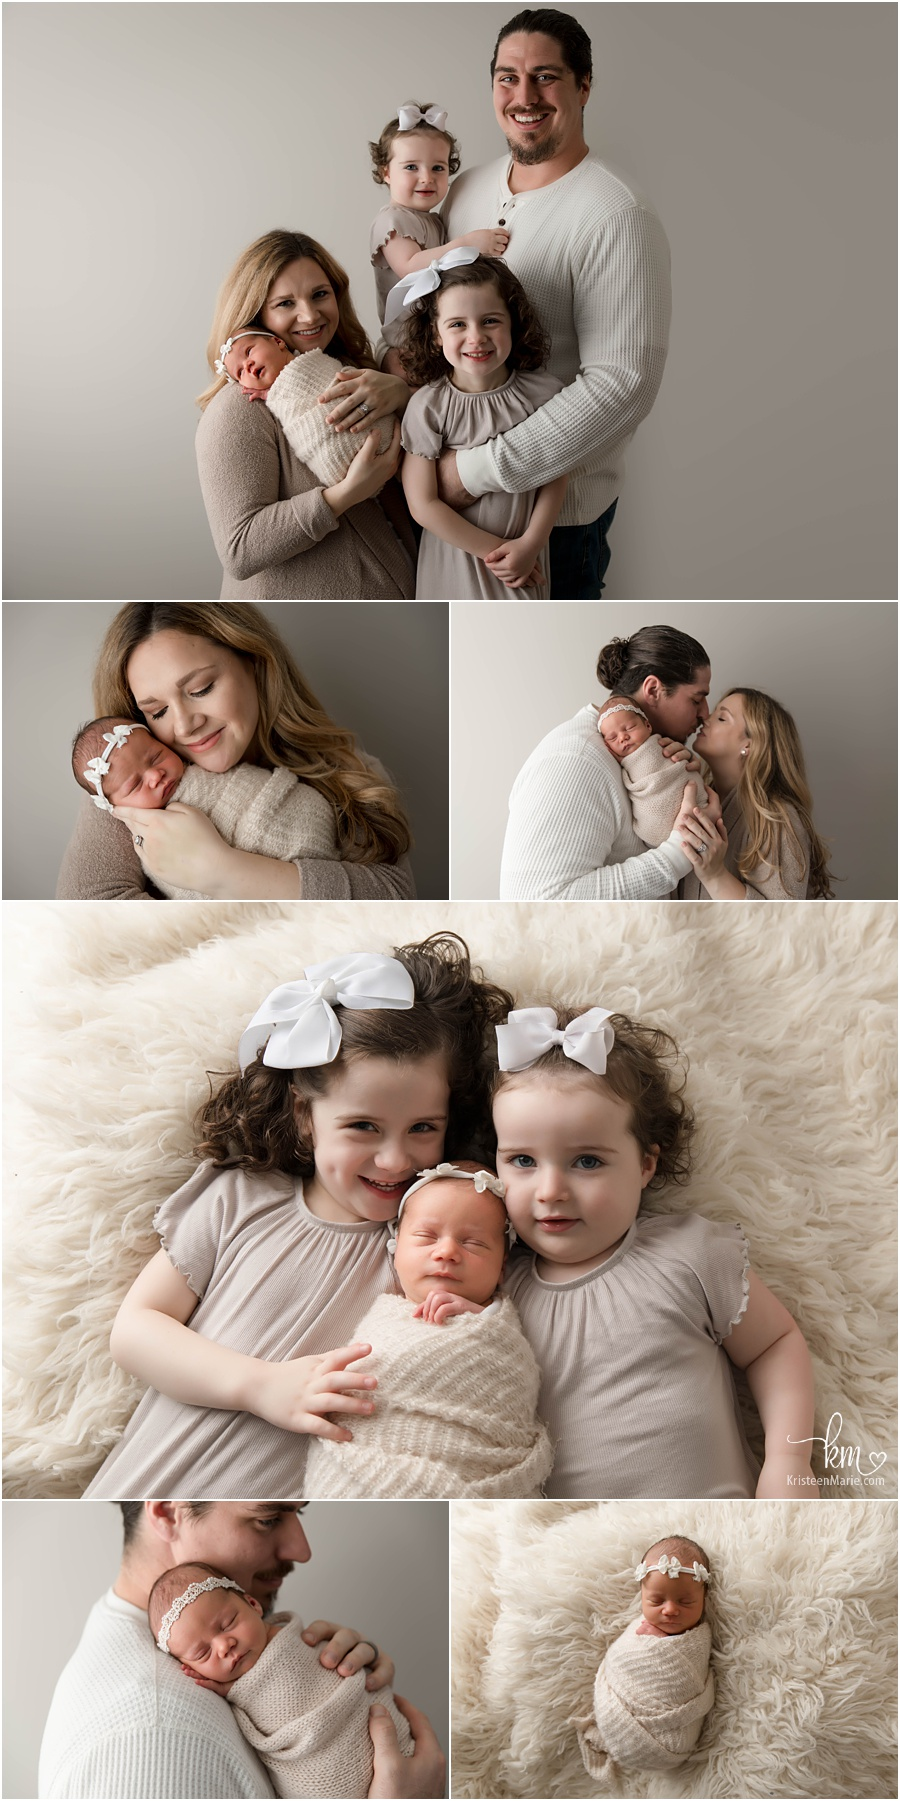 family poses with newborn baby girl - family of 5